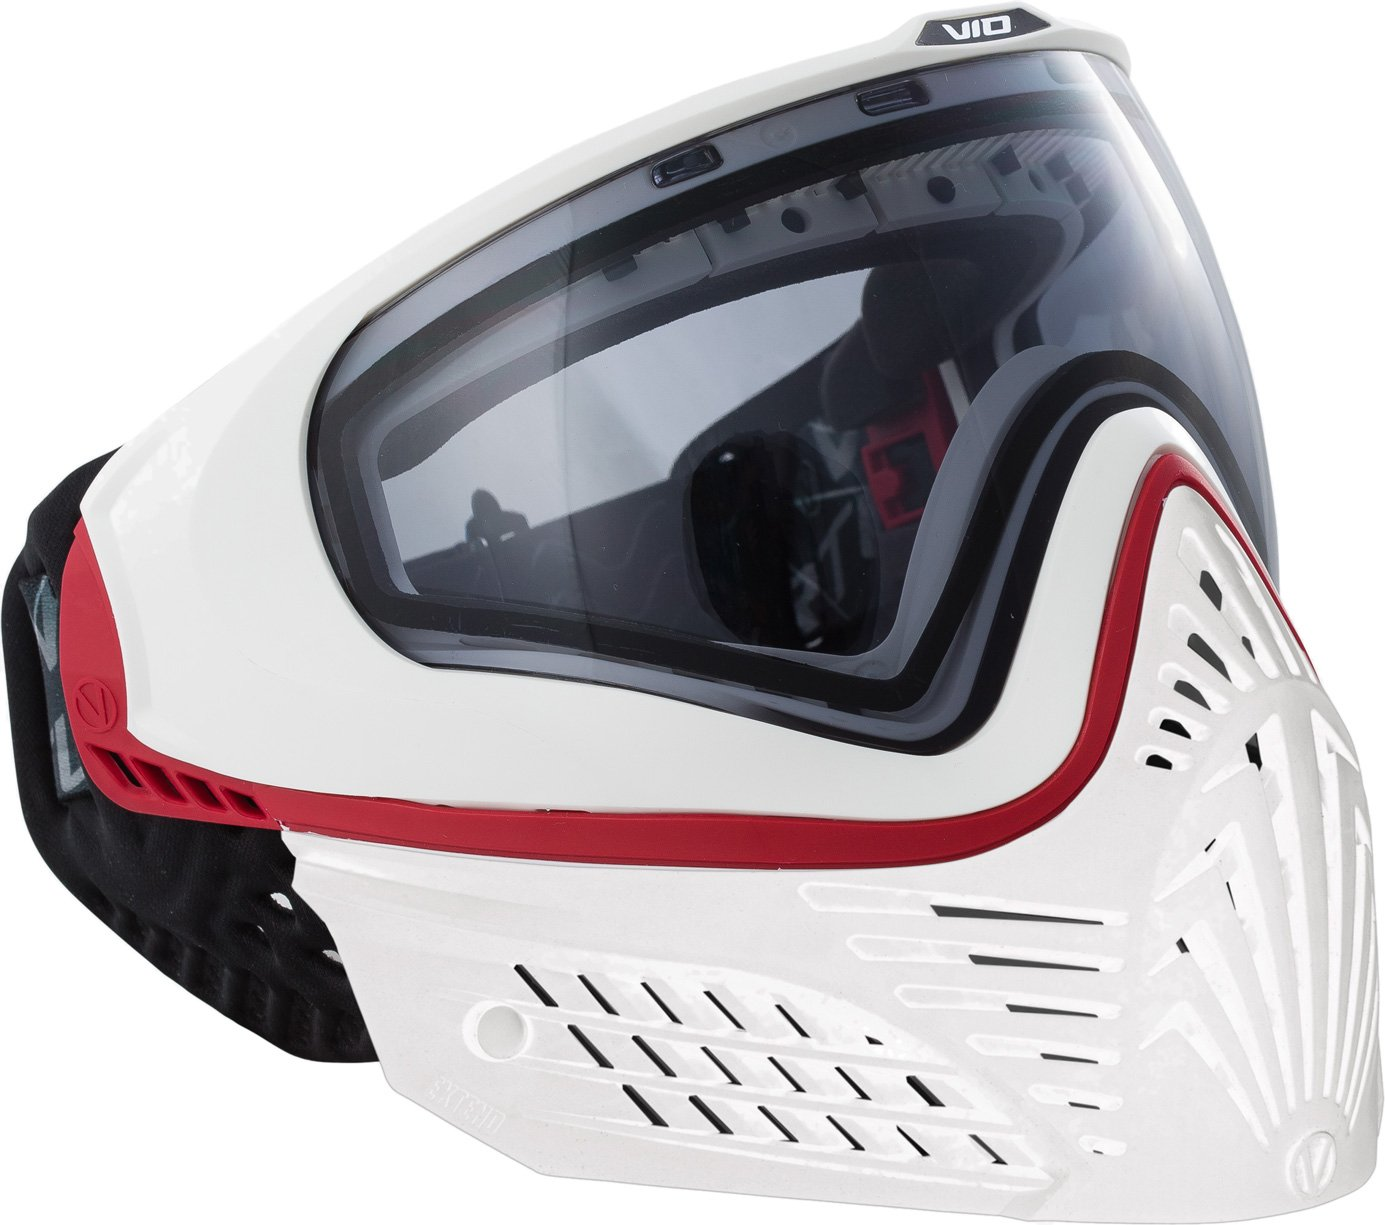 Virtue VIO Extend PRO Thermal Paintball Goggles/Masks - Red/White by Virtue Paintball